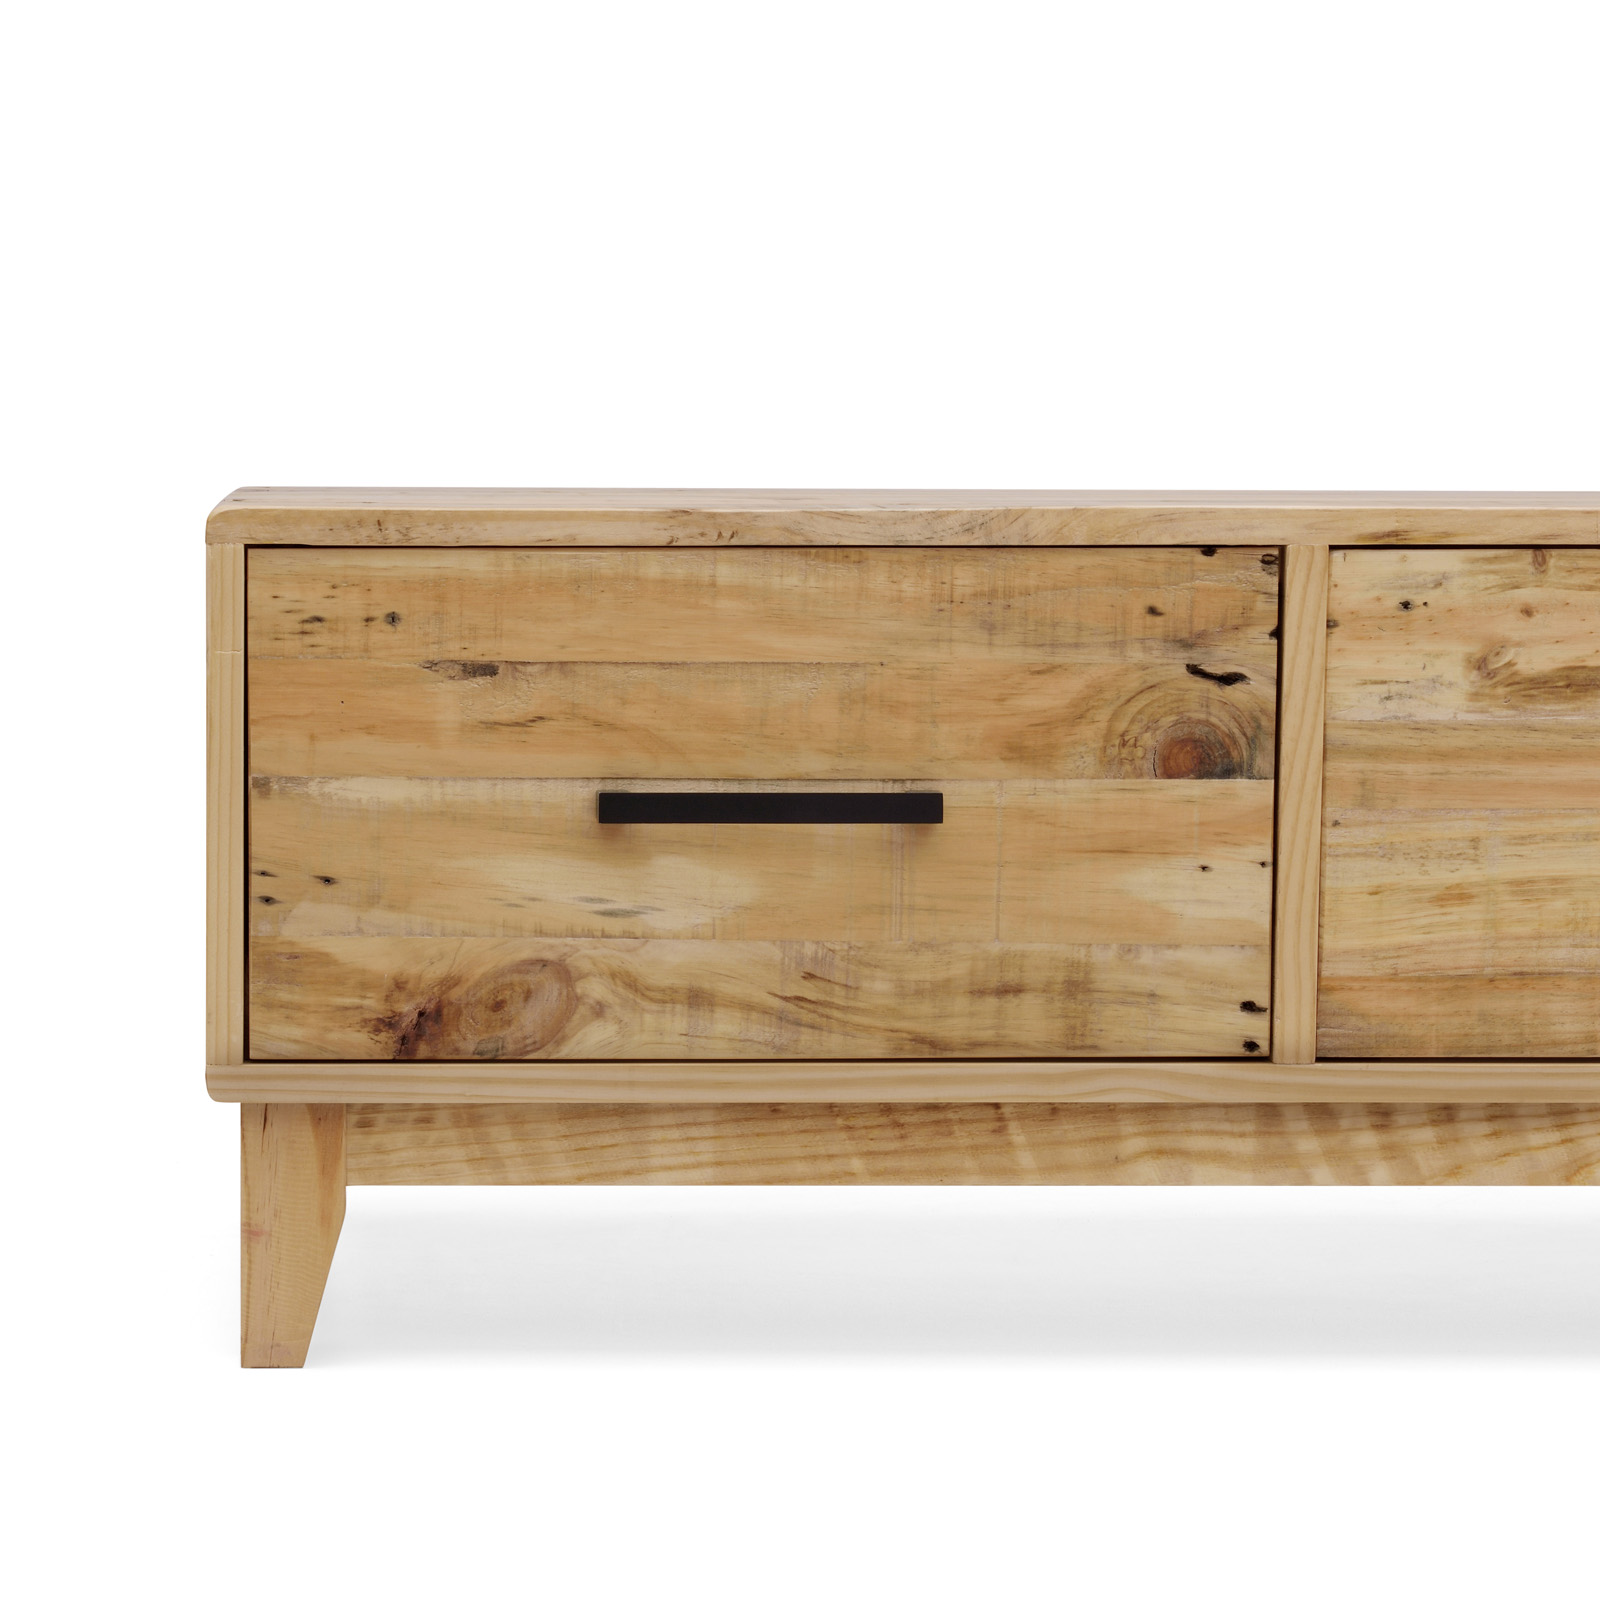 Portland Brand New Recycled Solid Pine Timber Coffee Table